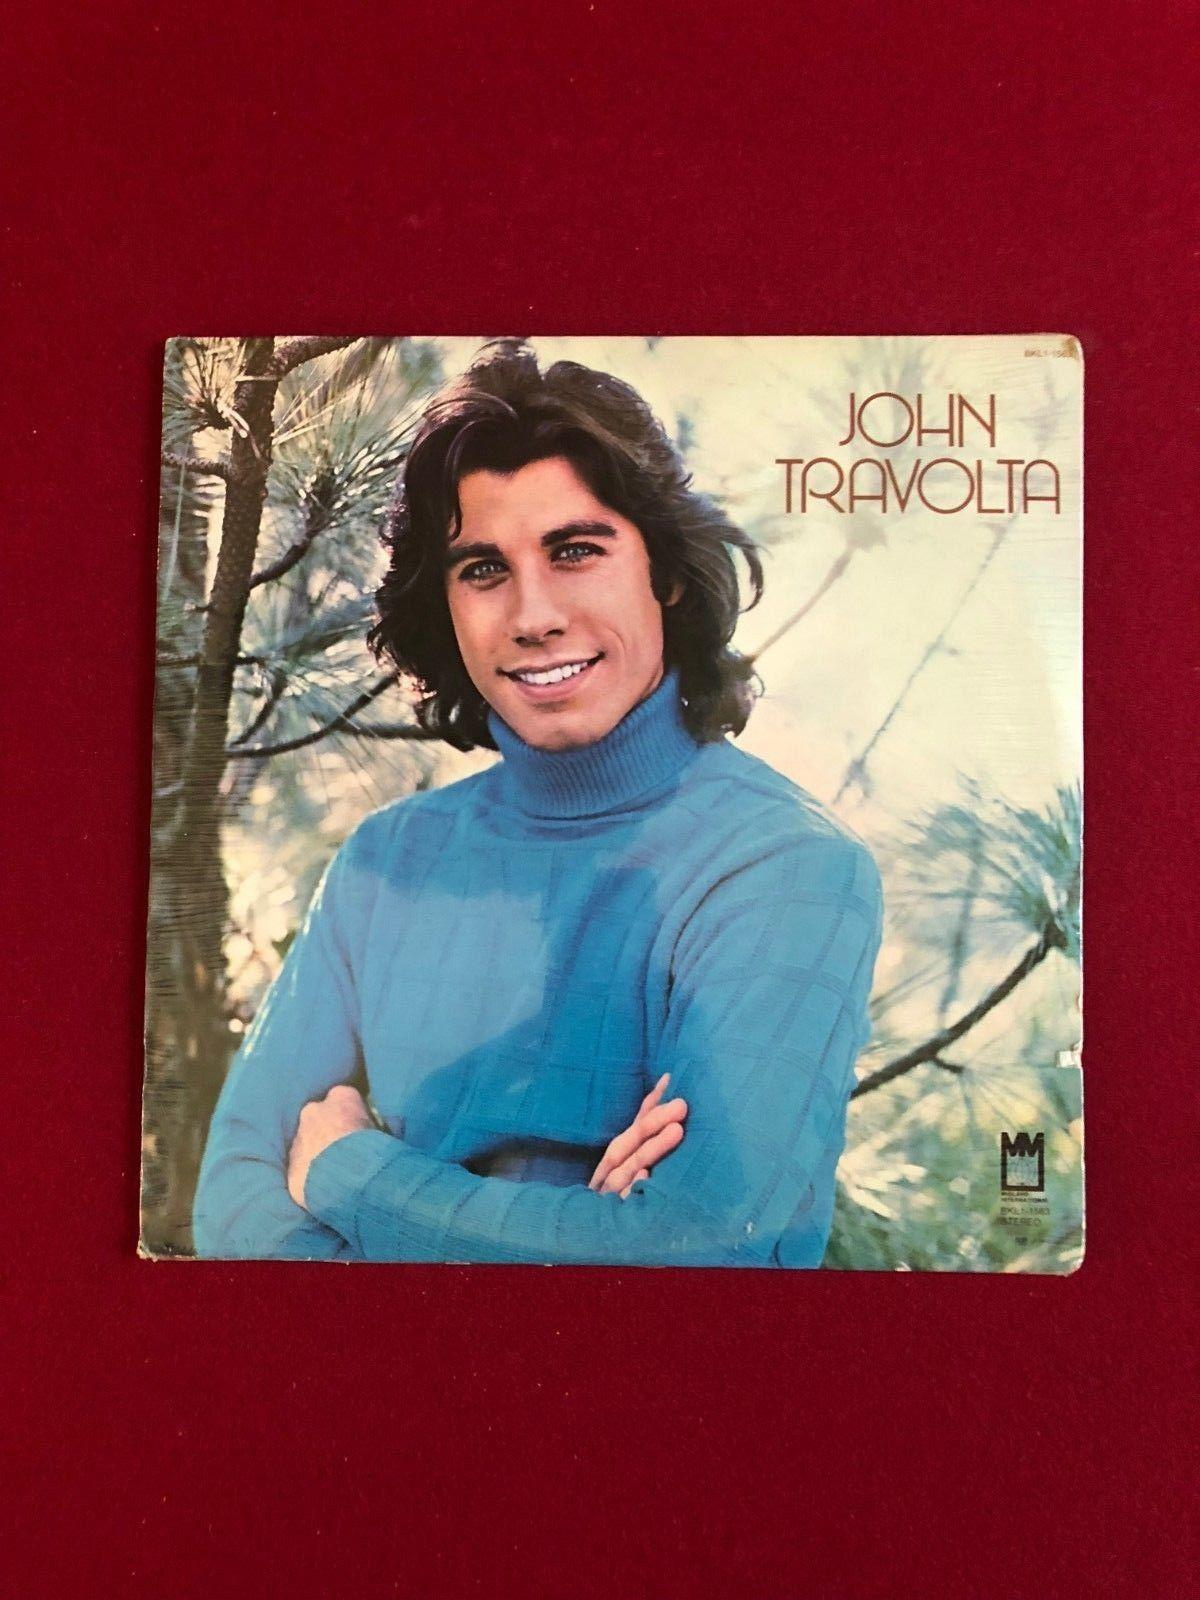 1976, John Travolta, Un-Opened Record (Scarce) Welcome Back Kotter